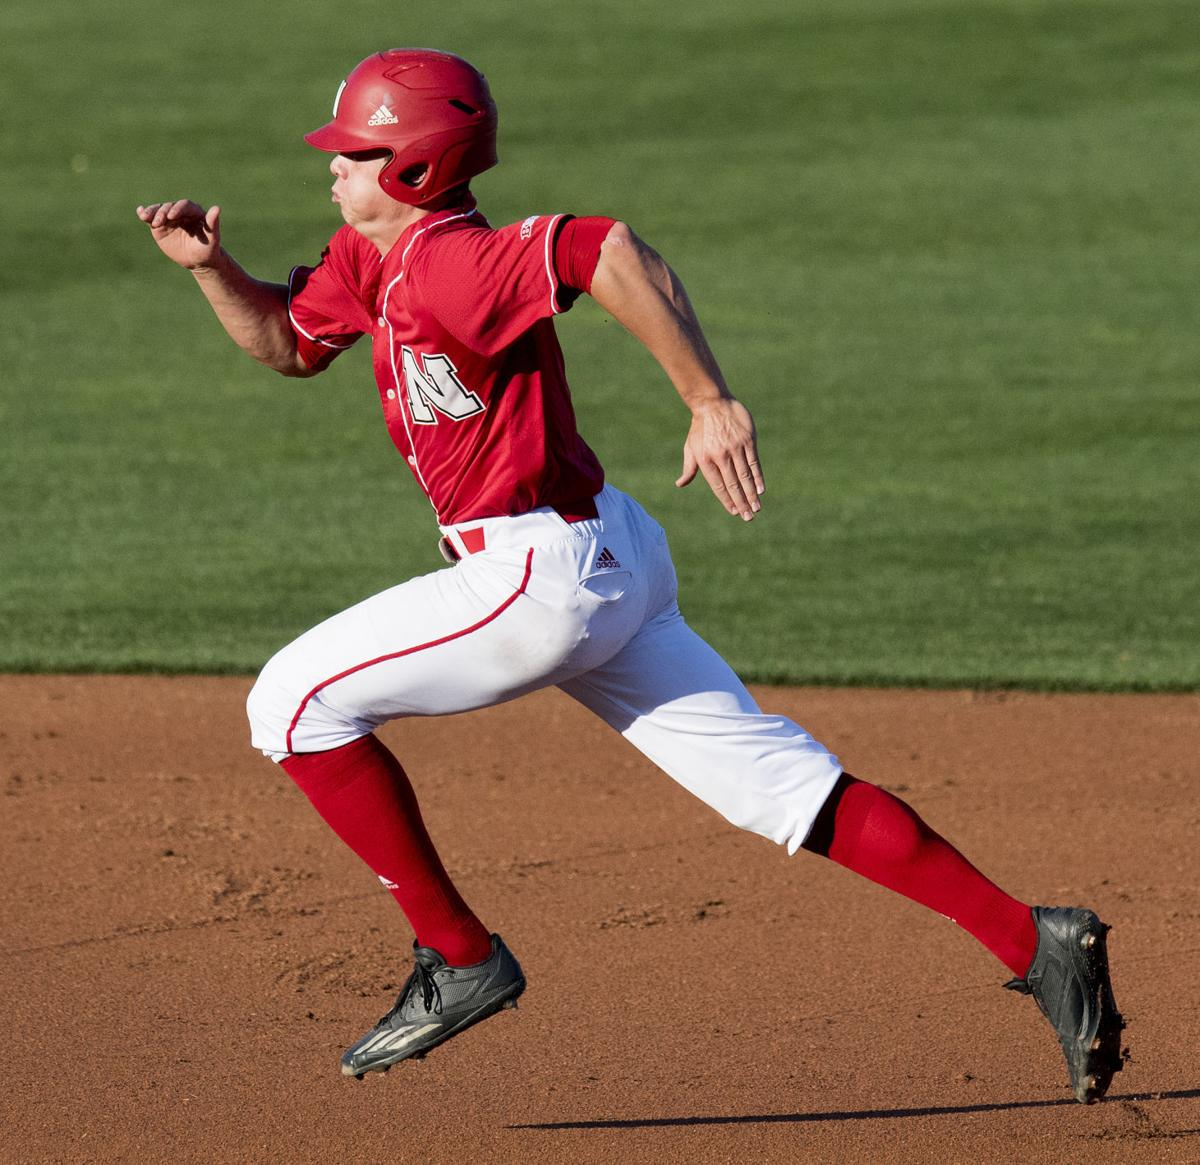 Photos: Husker Baseball Clicking In Series Opening Win